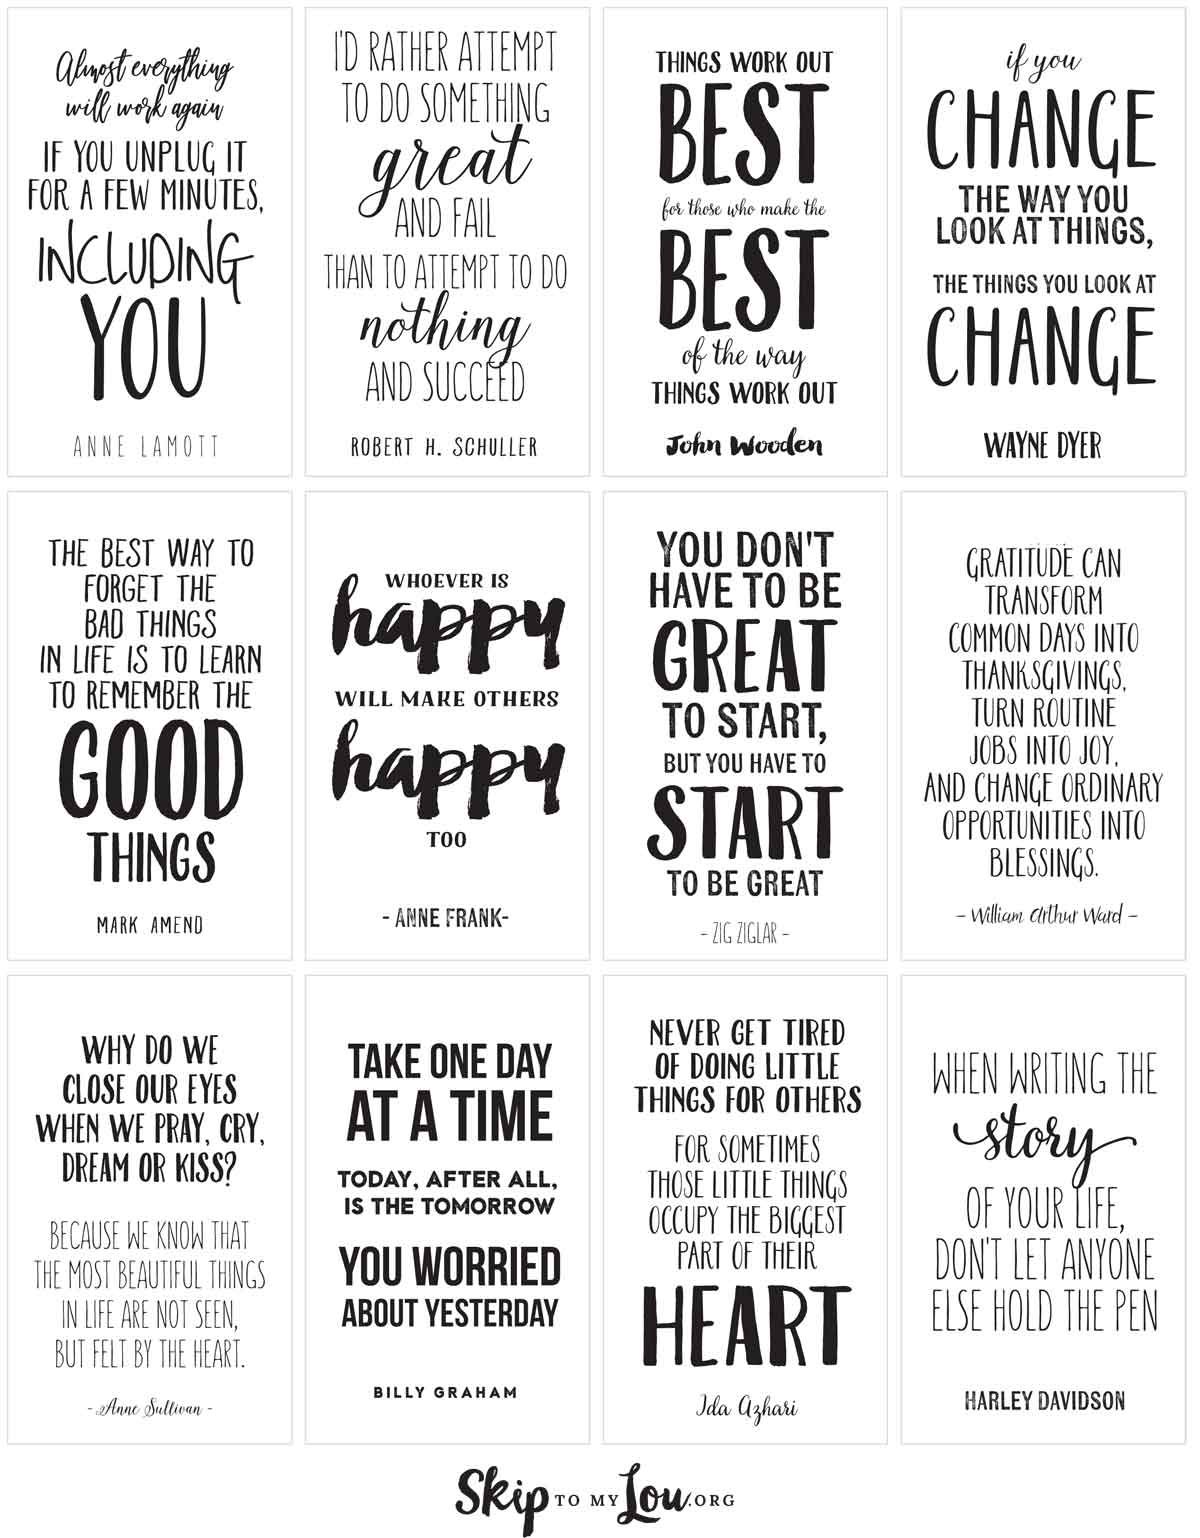 Amazing Life Quotes For Inspiration! {FREE PRINTABLE CARDS